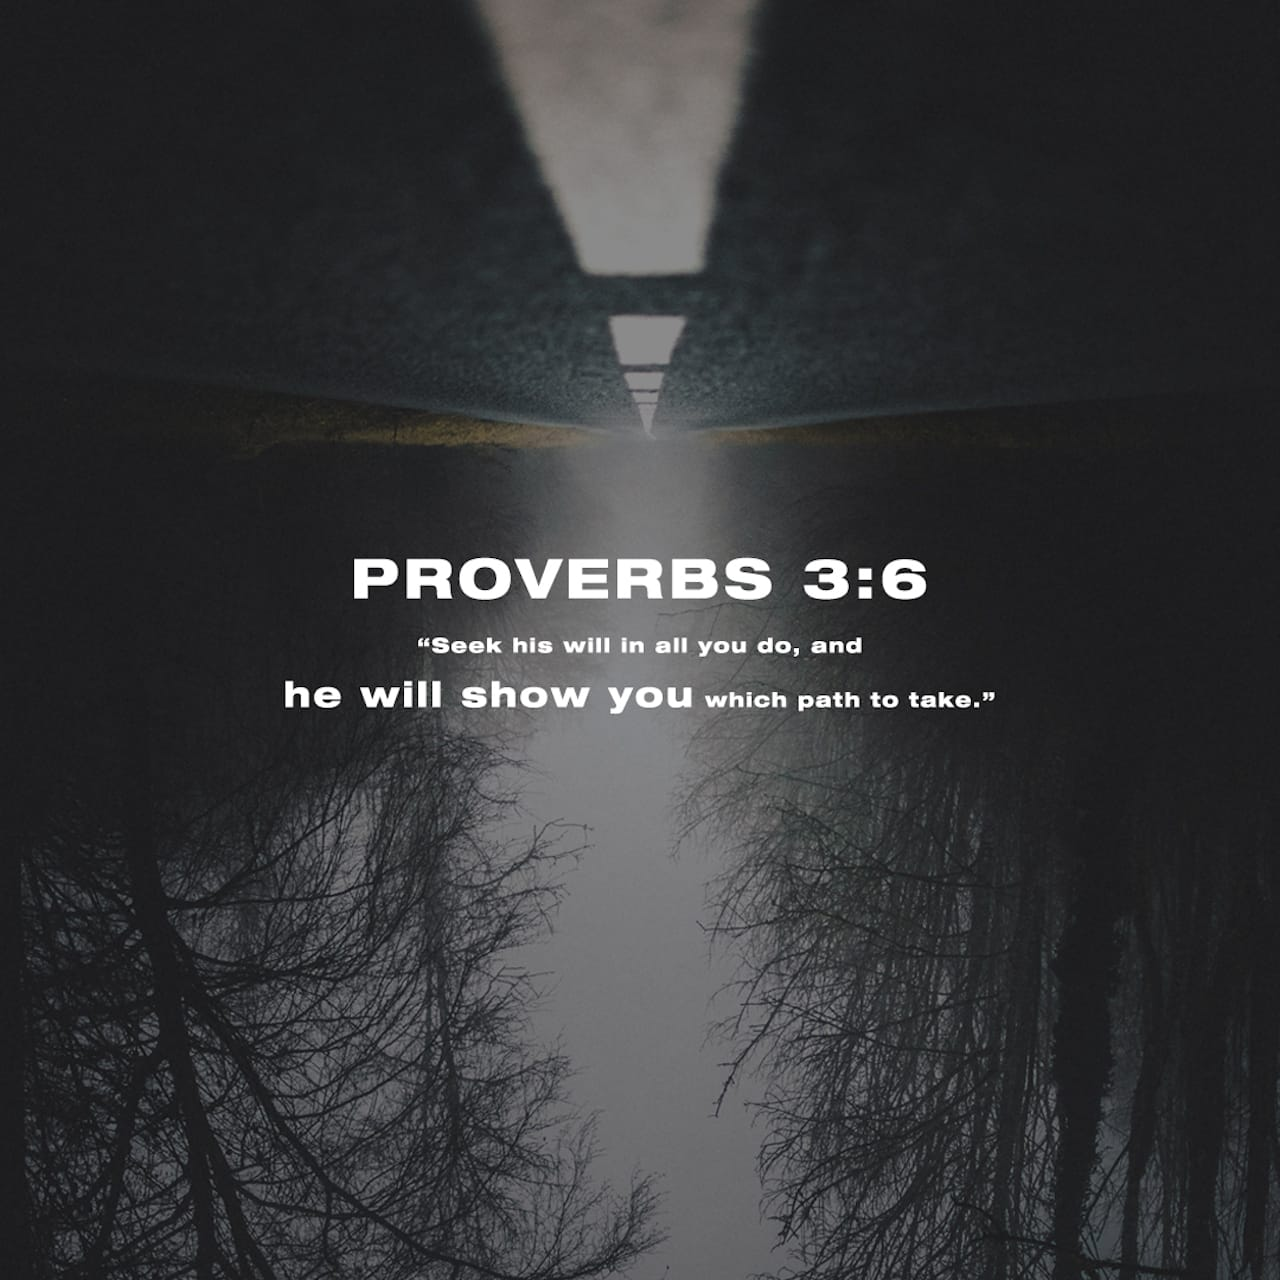 Proverbs 3:5-6 Trust in the LORD with all your heart and lean not on your own understanding; in all your ways submit to him, and he will make your paths straight. | New International Version (NIV)